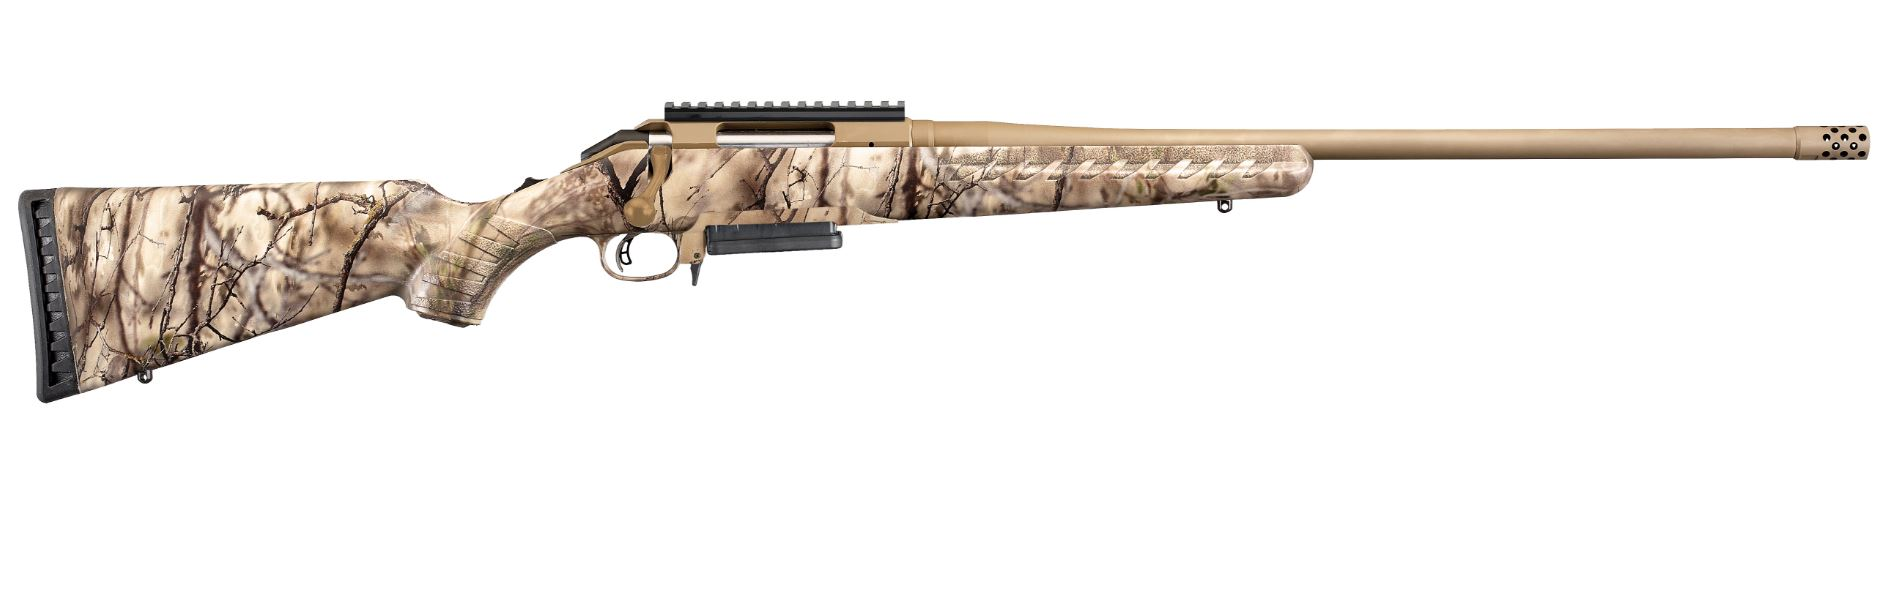 Ruger American Rifle 6.5 Creedmoor